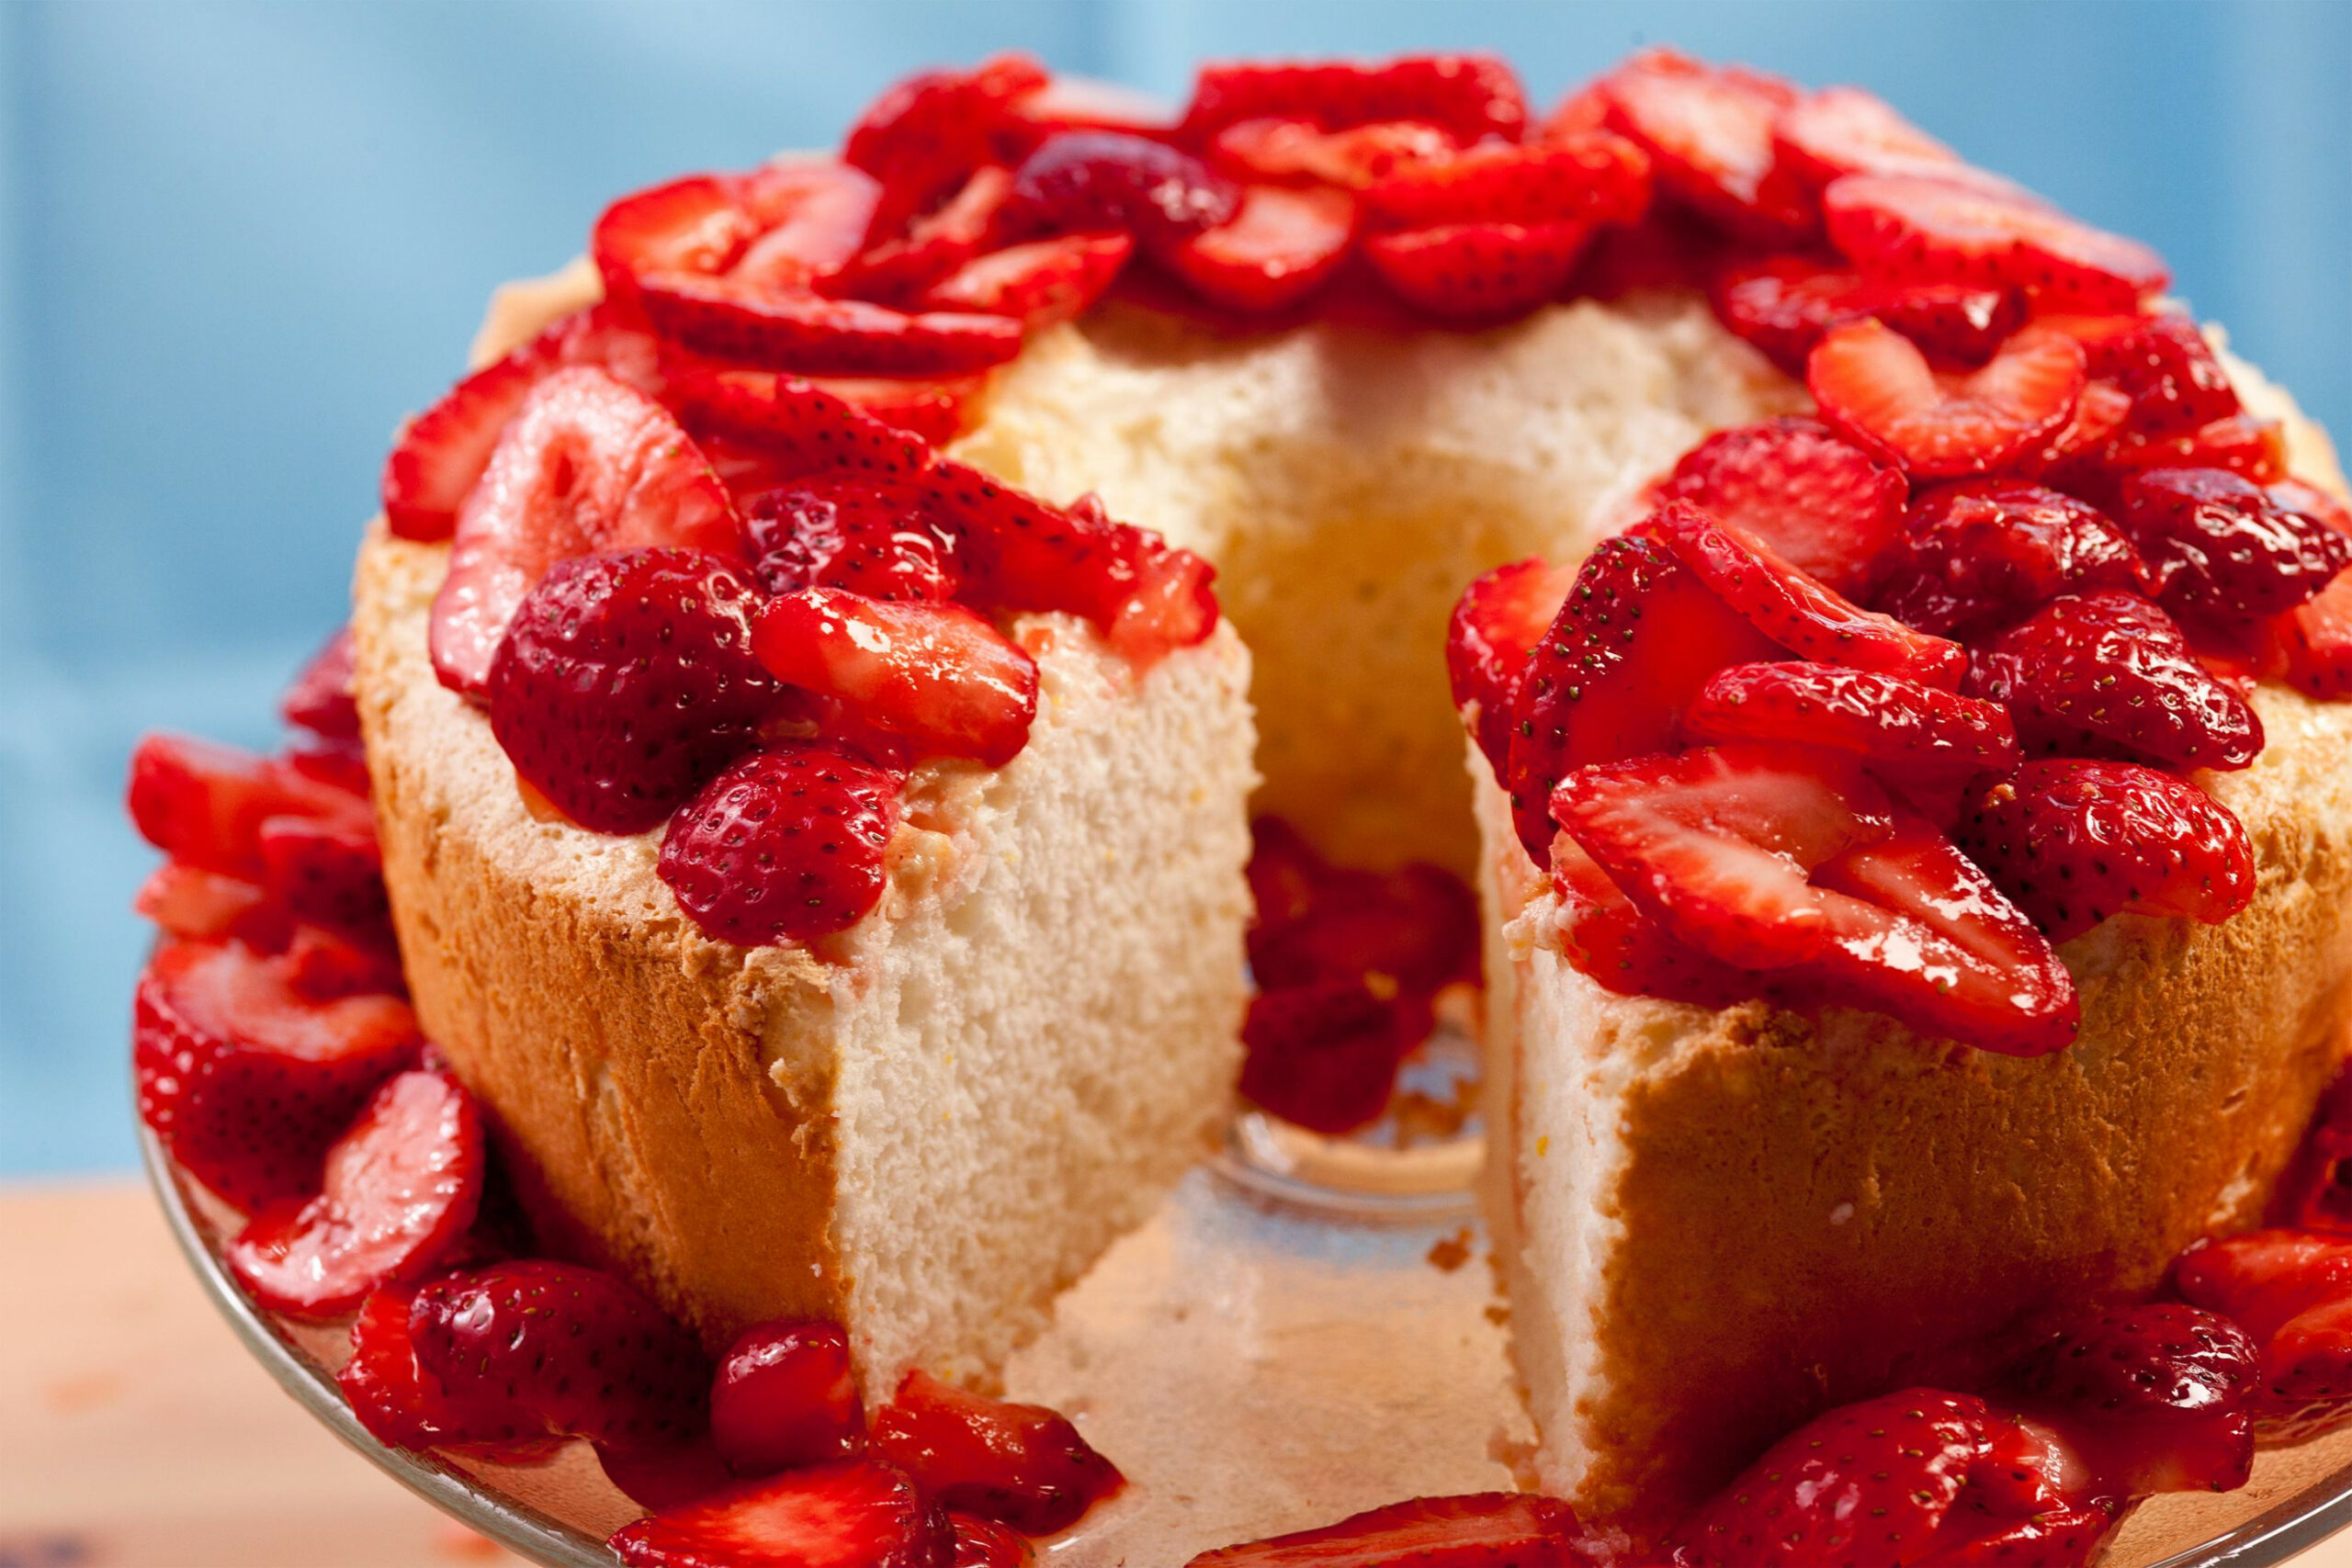 strawberry dessert made with angel food cake - recipes using angel food cake